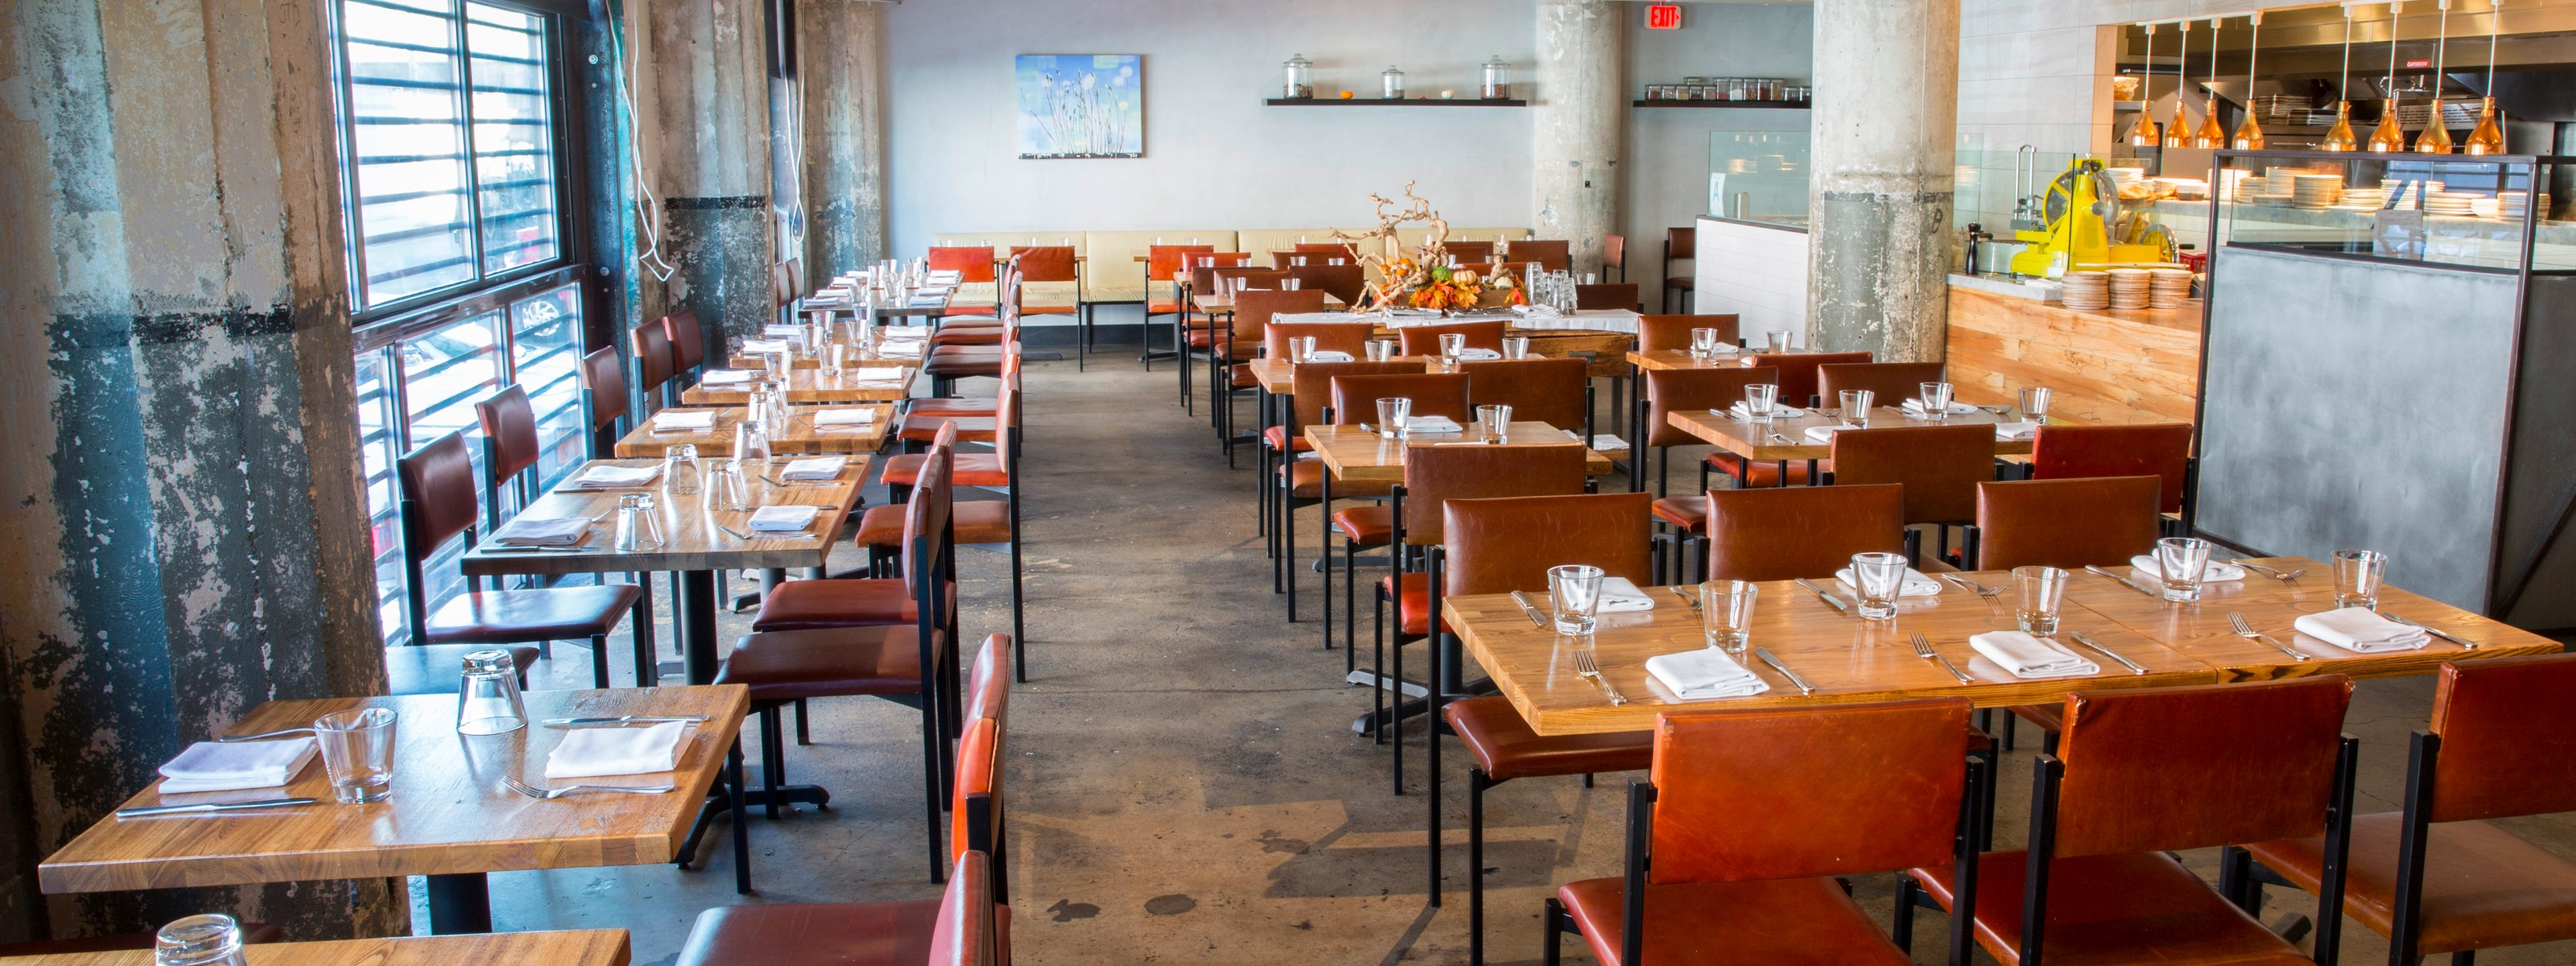 8 Downtown Restaurants That'll (Really) Make You Feel Like a Native NewYorker